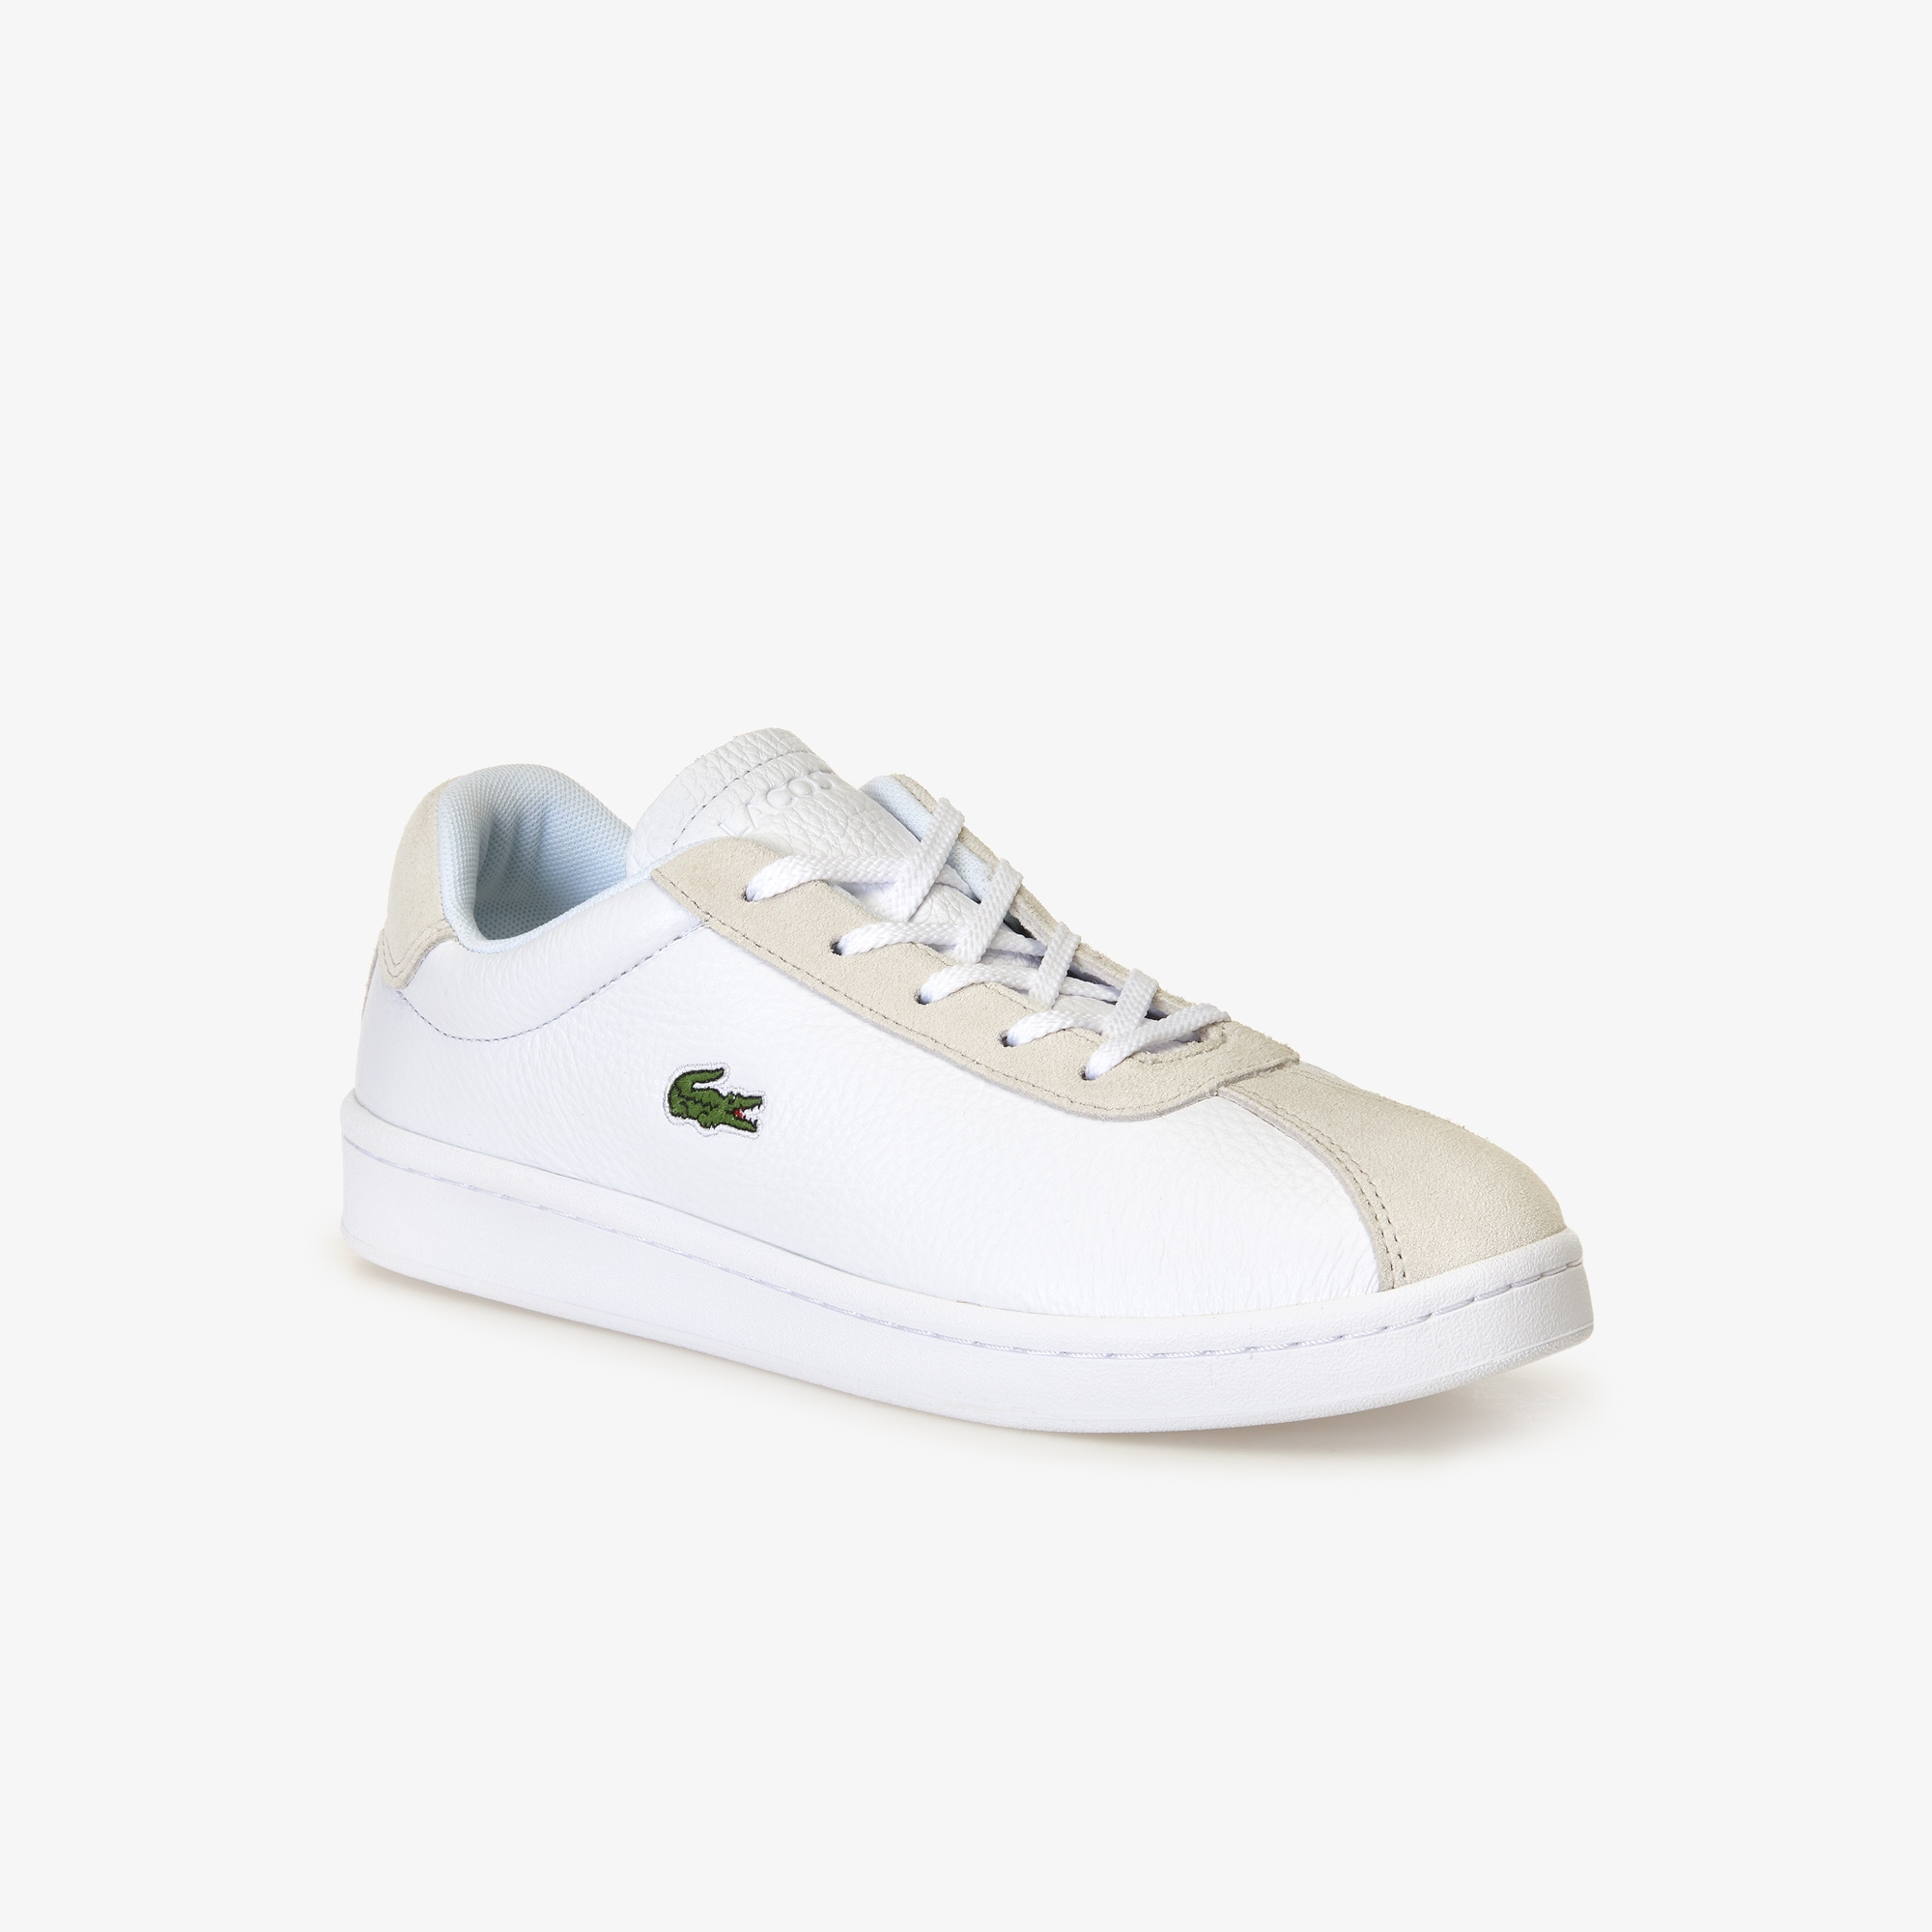 ee6f705c82 Chaussures femme | Collection Femme | LACOSTE